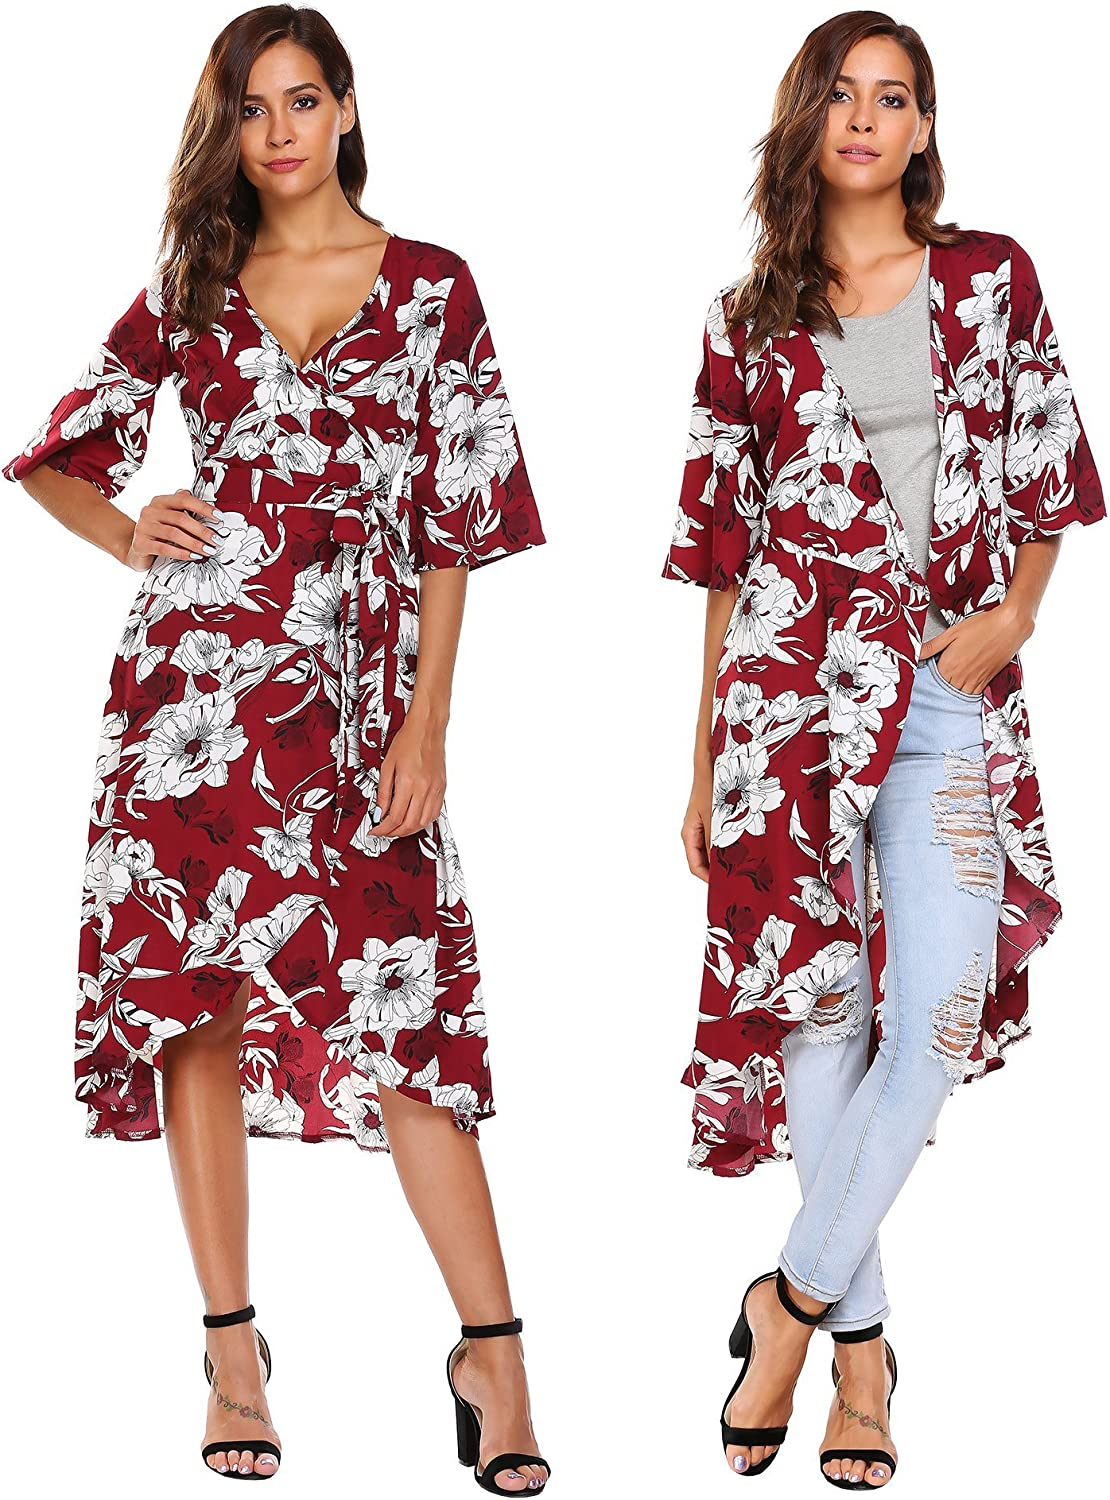 Pasttry Women's Floral Cardigan Flowy Trumpet Sleeve Party Beach VNeck Wrap Dress Cover up